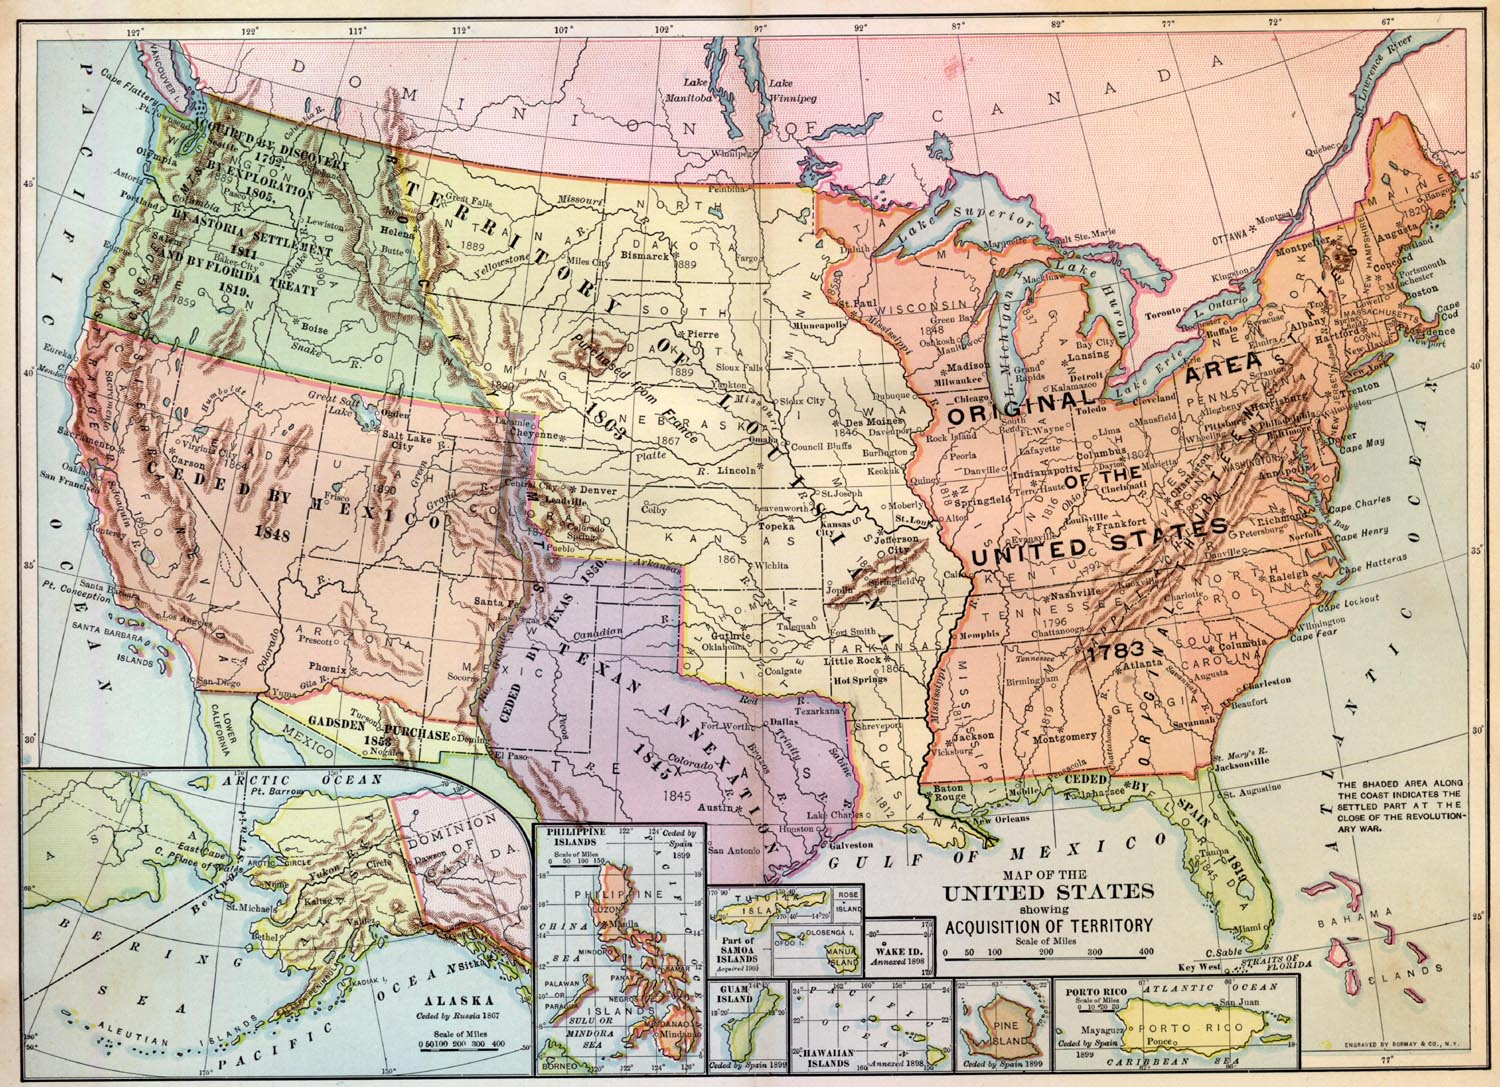 Details of western expansion of the united states